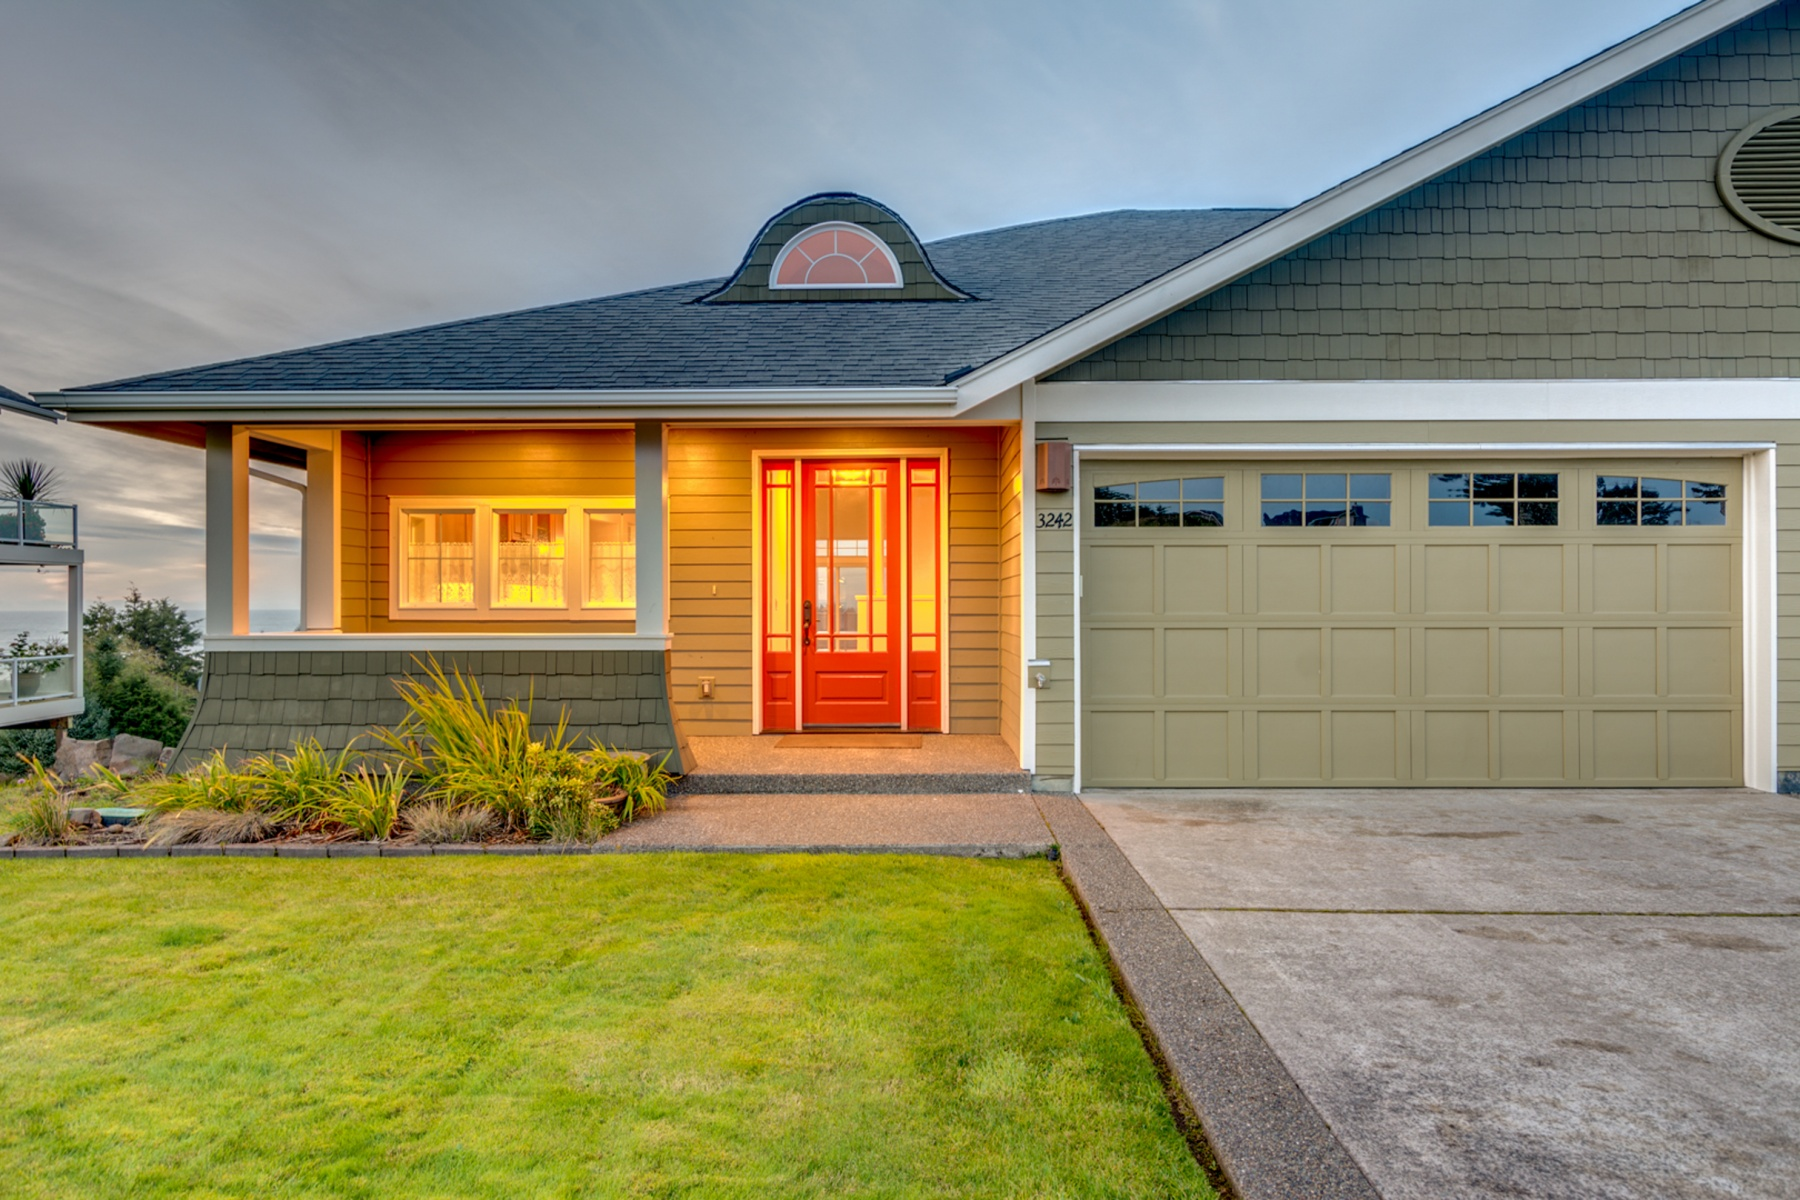 Single Family Home for Sale at Luxury Townhome in Ilwaco 3242 OVERLOOK Loop Ilwaco, Washington 98624 United States